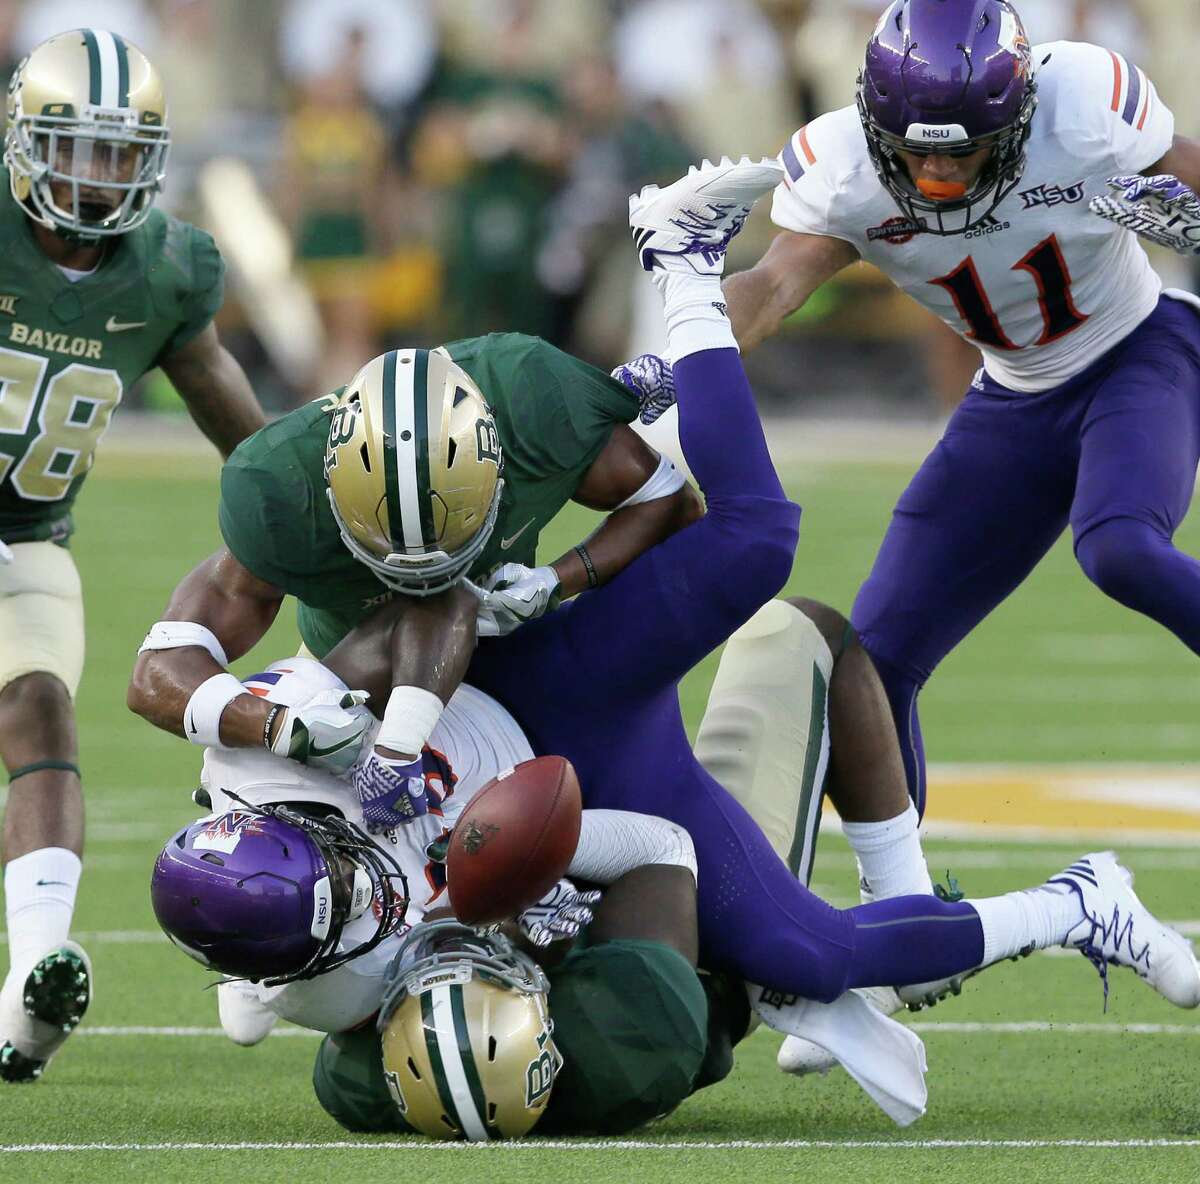 Northwestern State running back De'Mard Llorens (25) fumbles the ball during the first half of an NCAA college football game against Baylor Friday, Sept. 2, 2016, in Waco, Texas. (AP Photo/LM Otero)